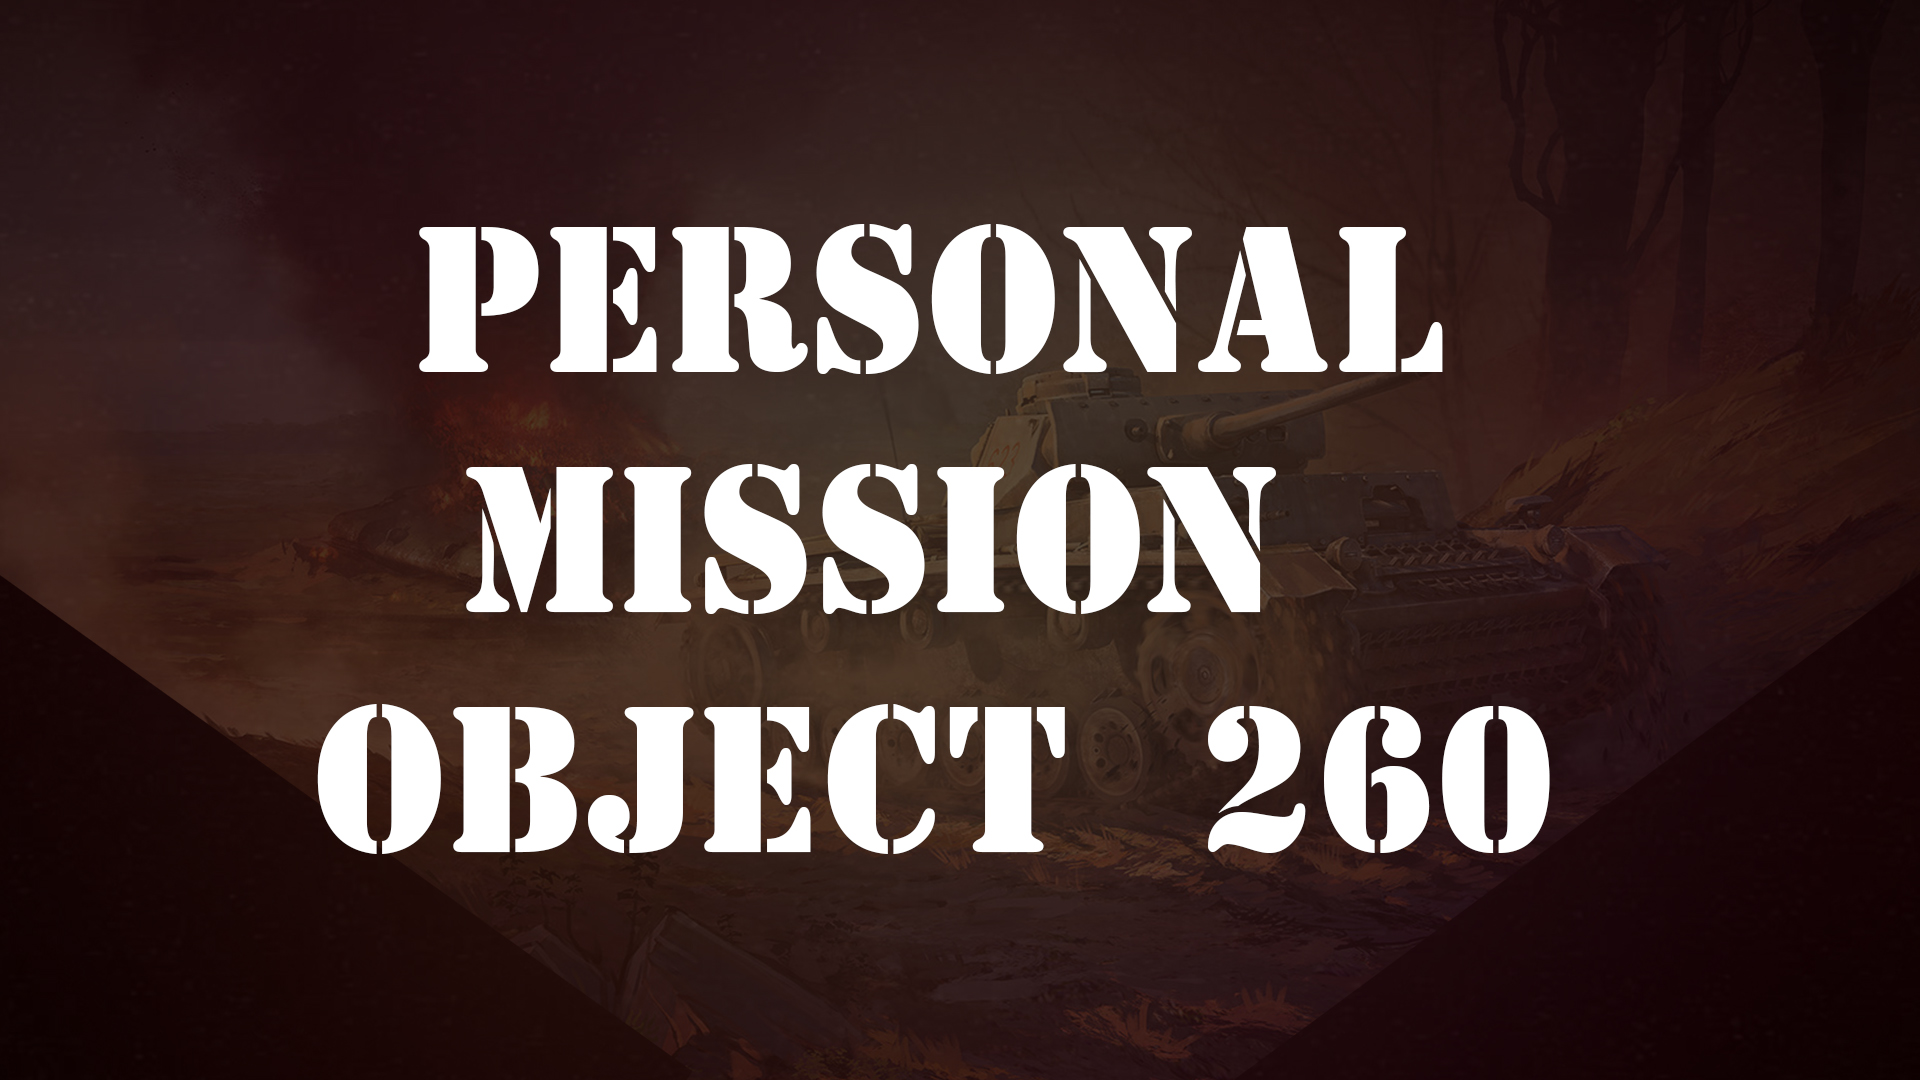 Personal mission Object 260